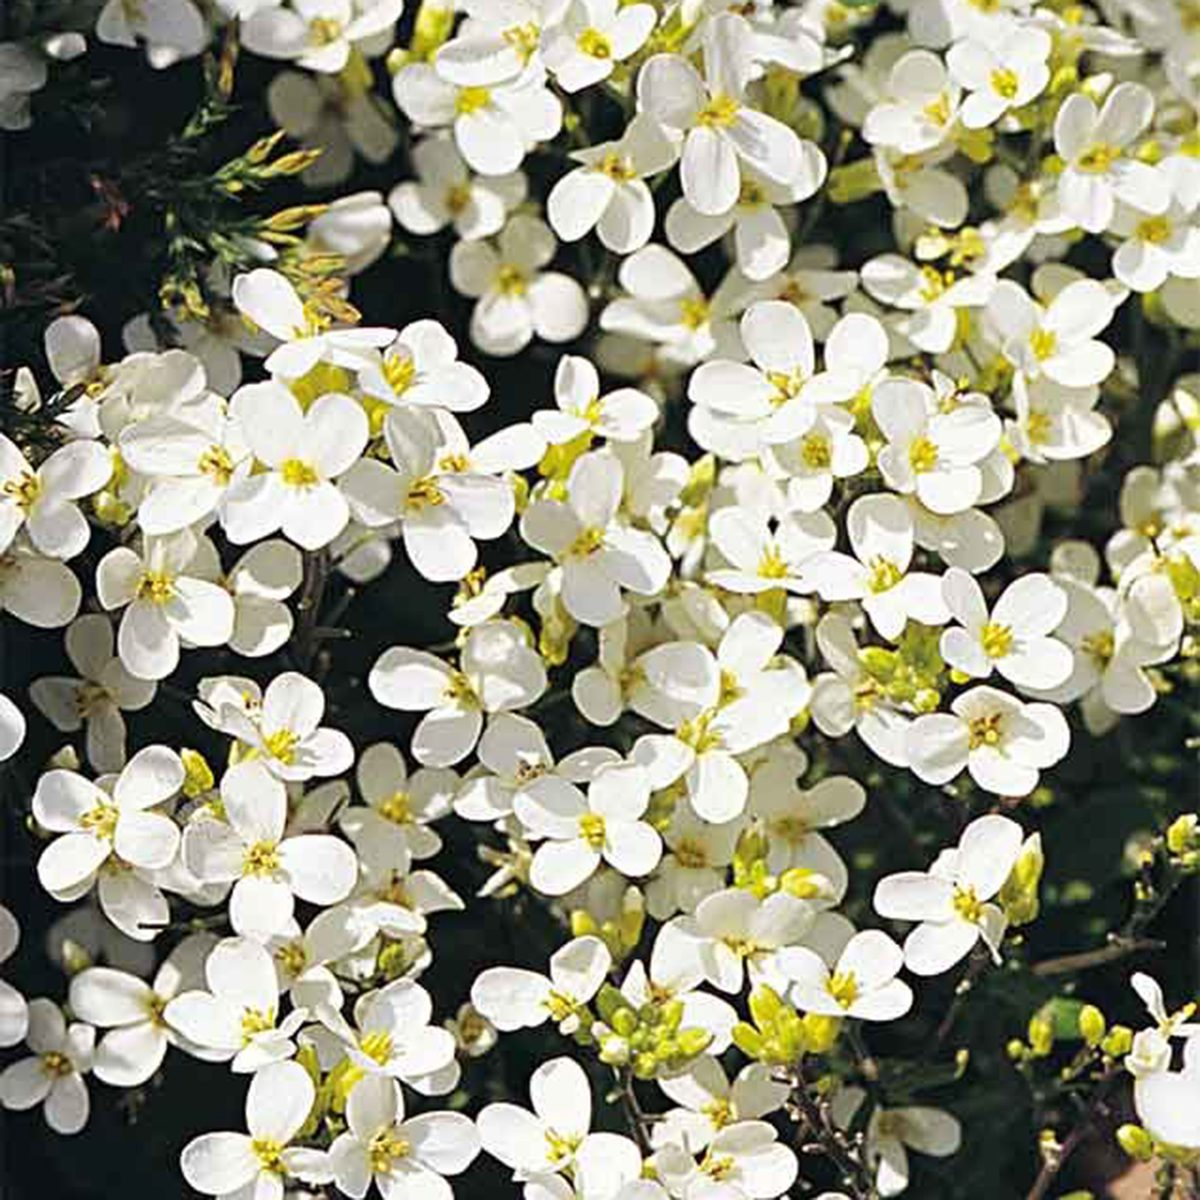 White Rock Cress Spring Flower Proven Winners